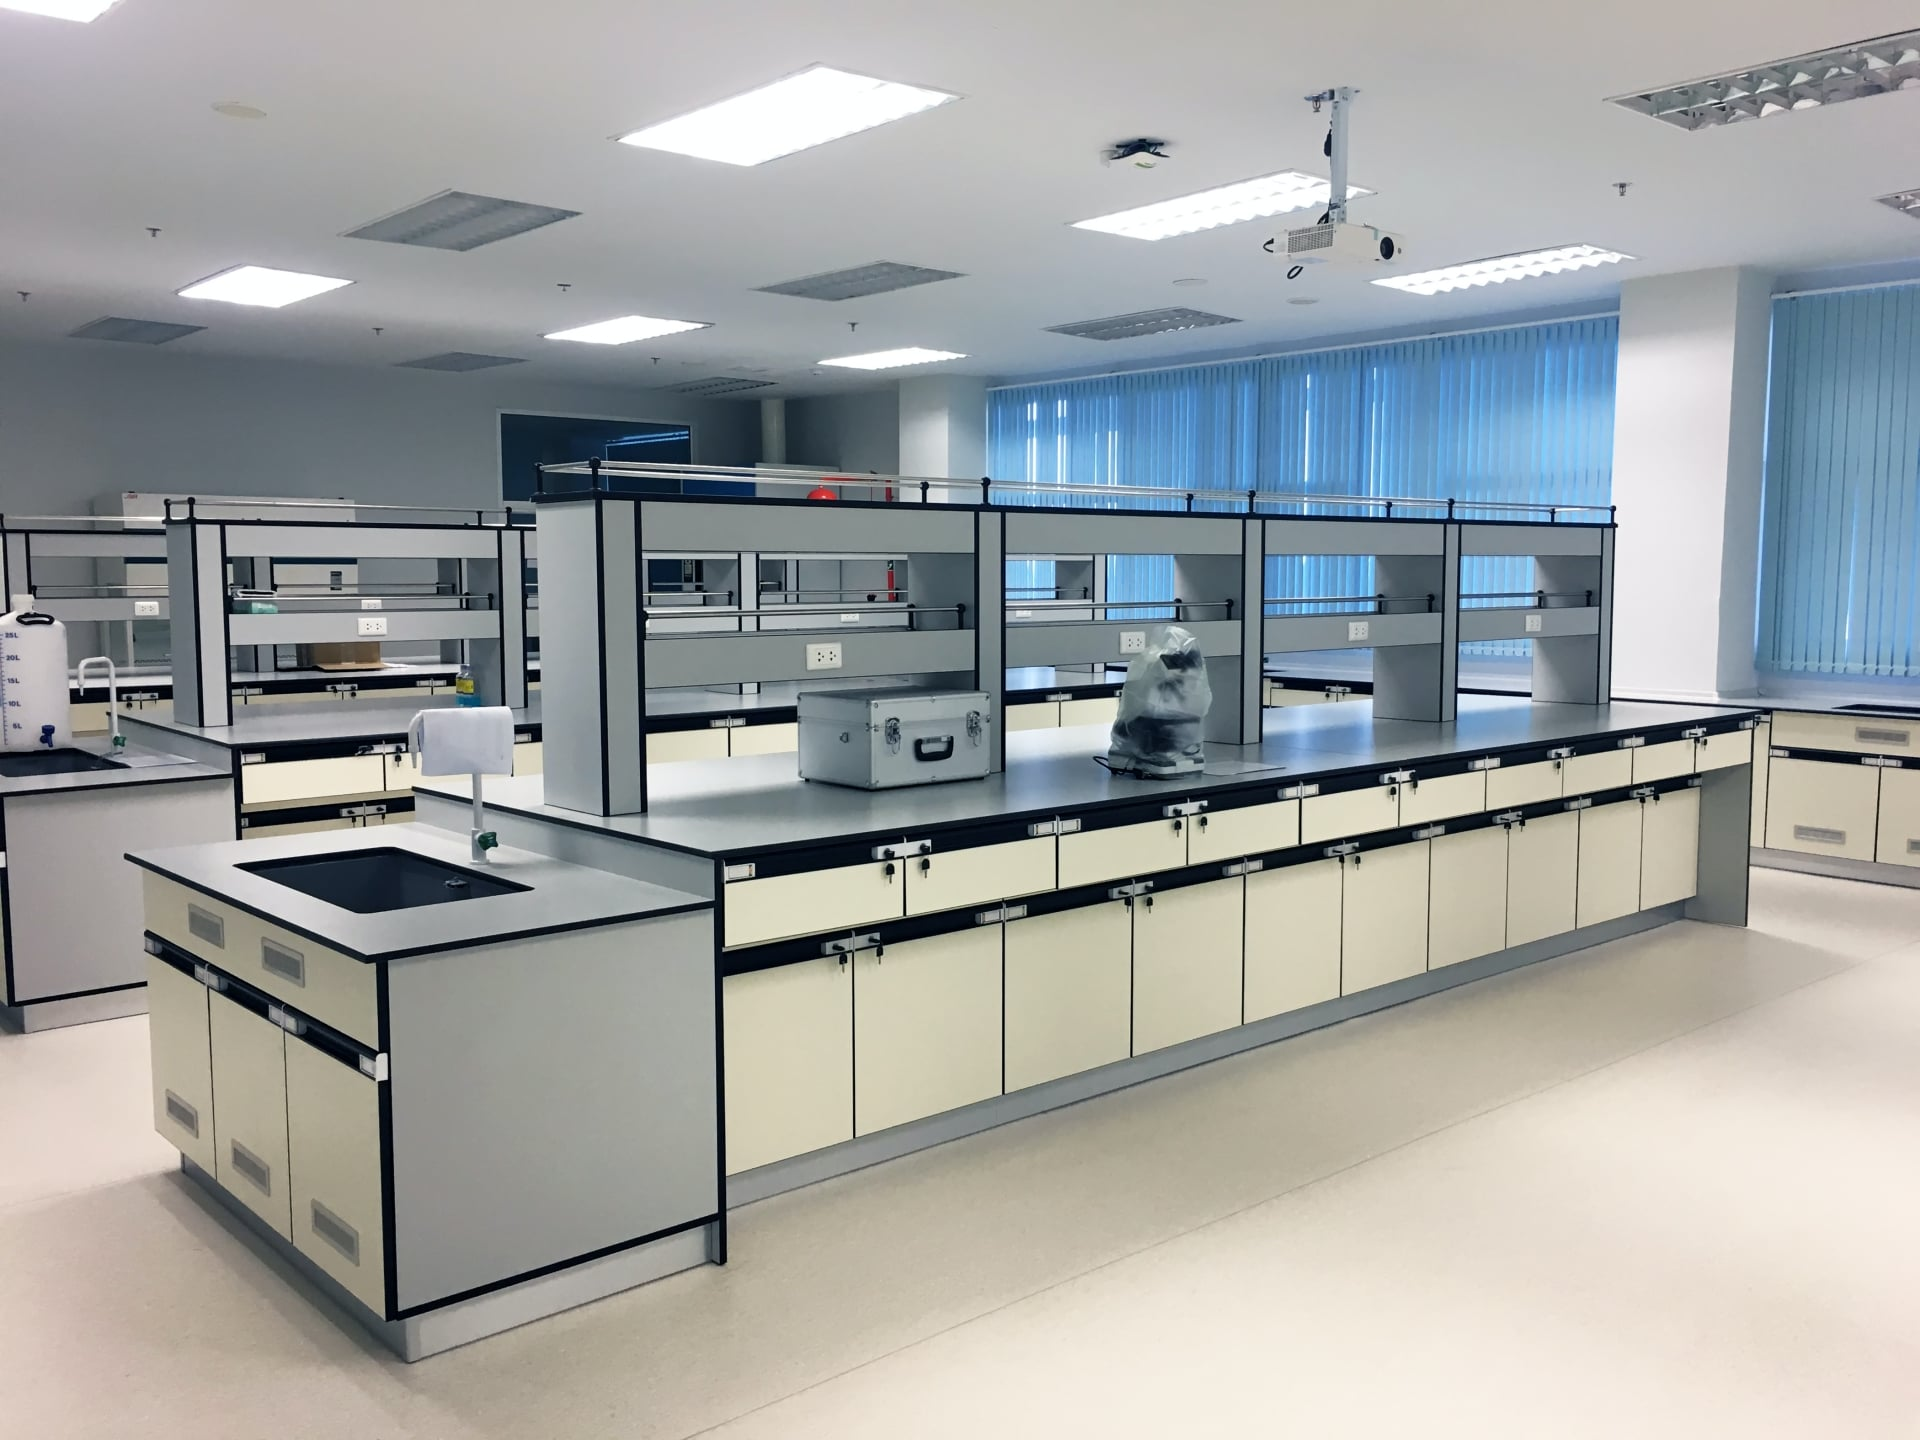 laboratory with cabinets and counters